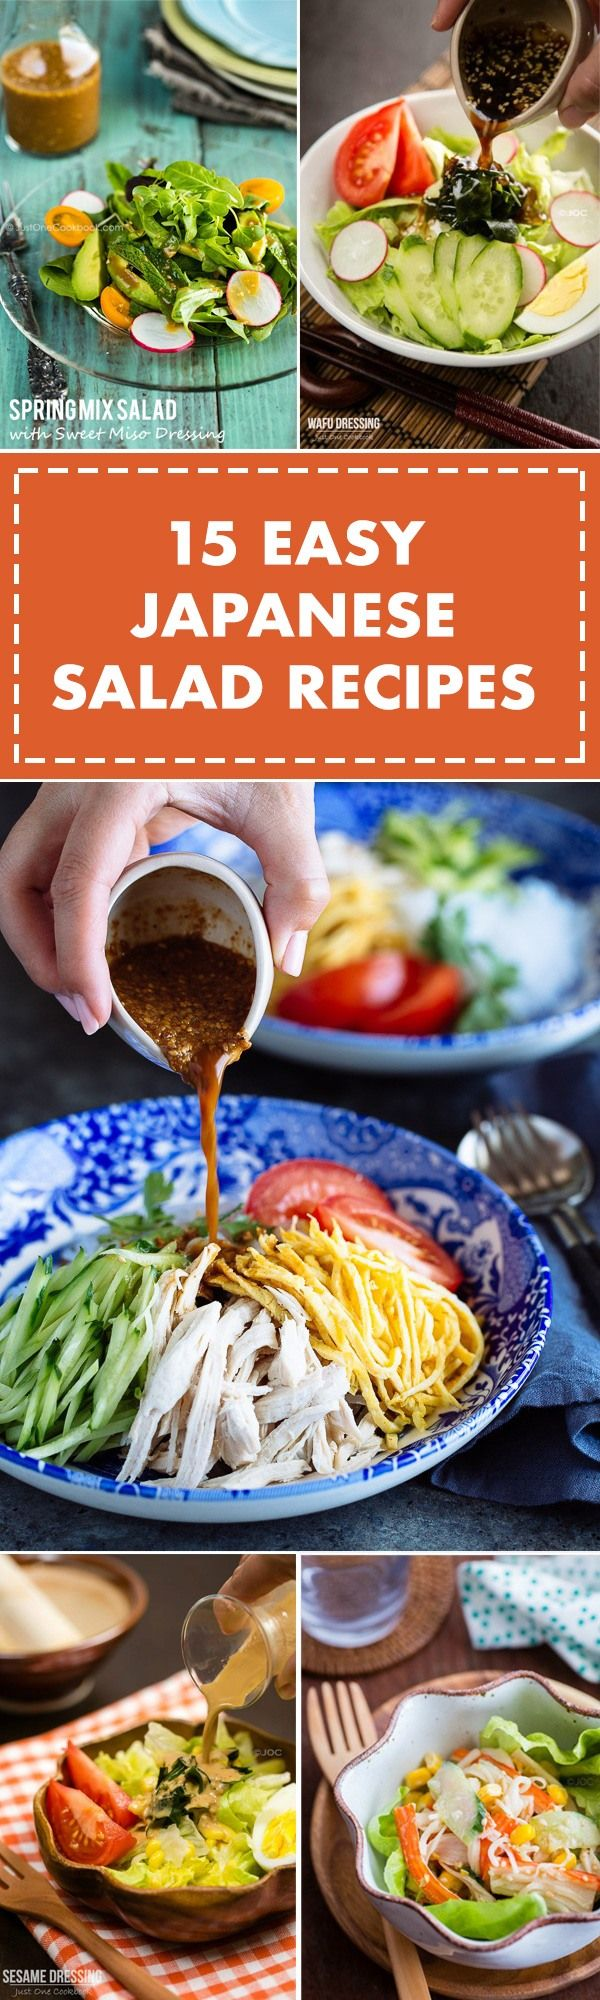 15 Easy Japanese Salad Recipes - Here's a scrumptious selection of Japanese salad recipes to wow your guests at a party! #salad #partyfood #Japanesefood #easy #サラダ #potluck | Easy Japanese Recipes at JustOneCookbook.com